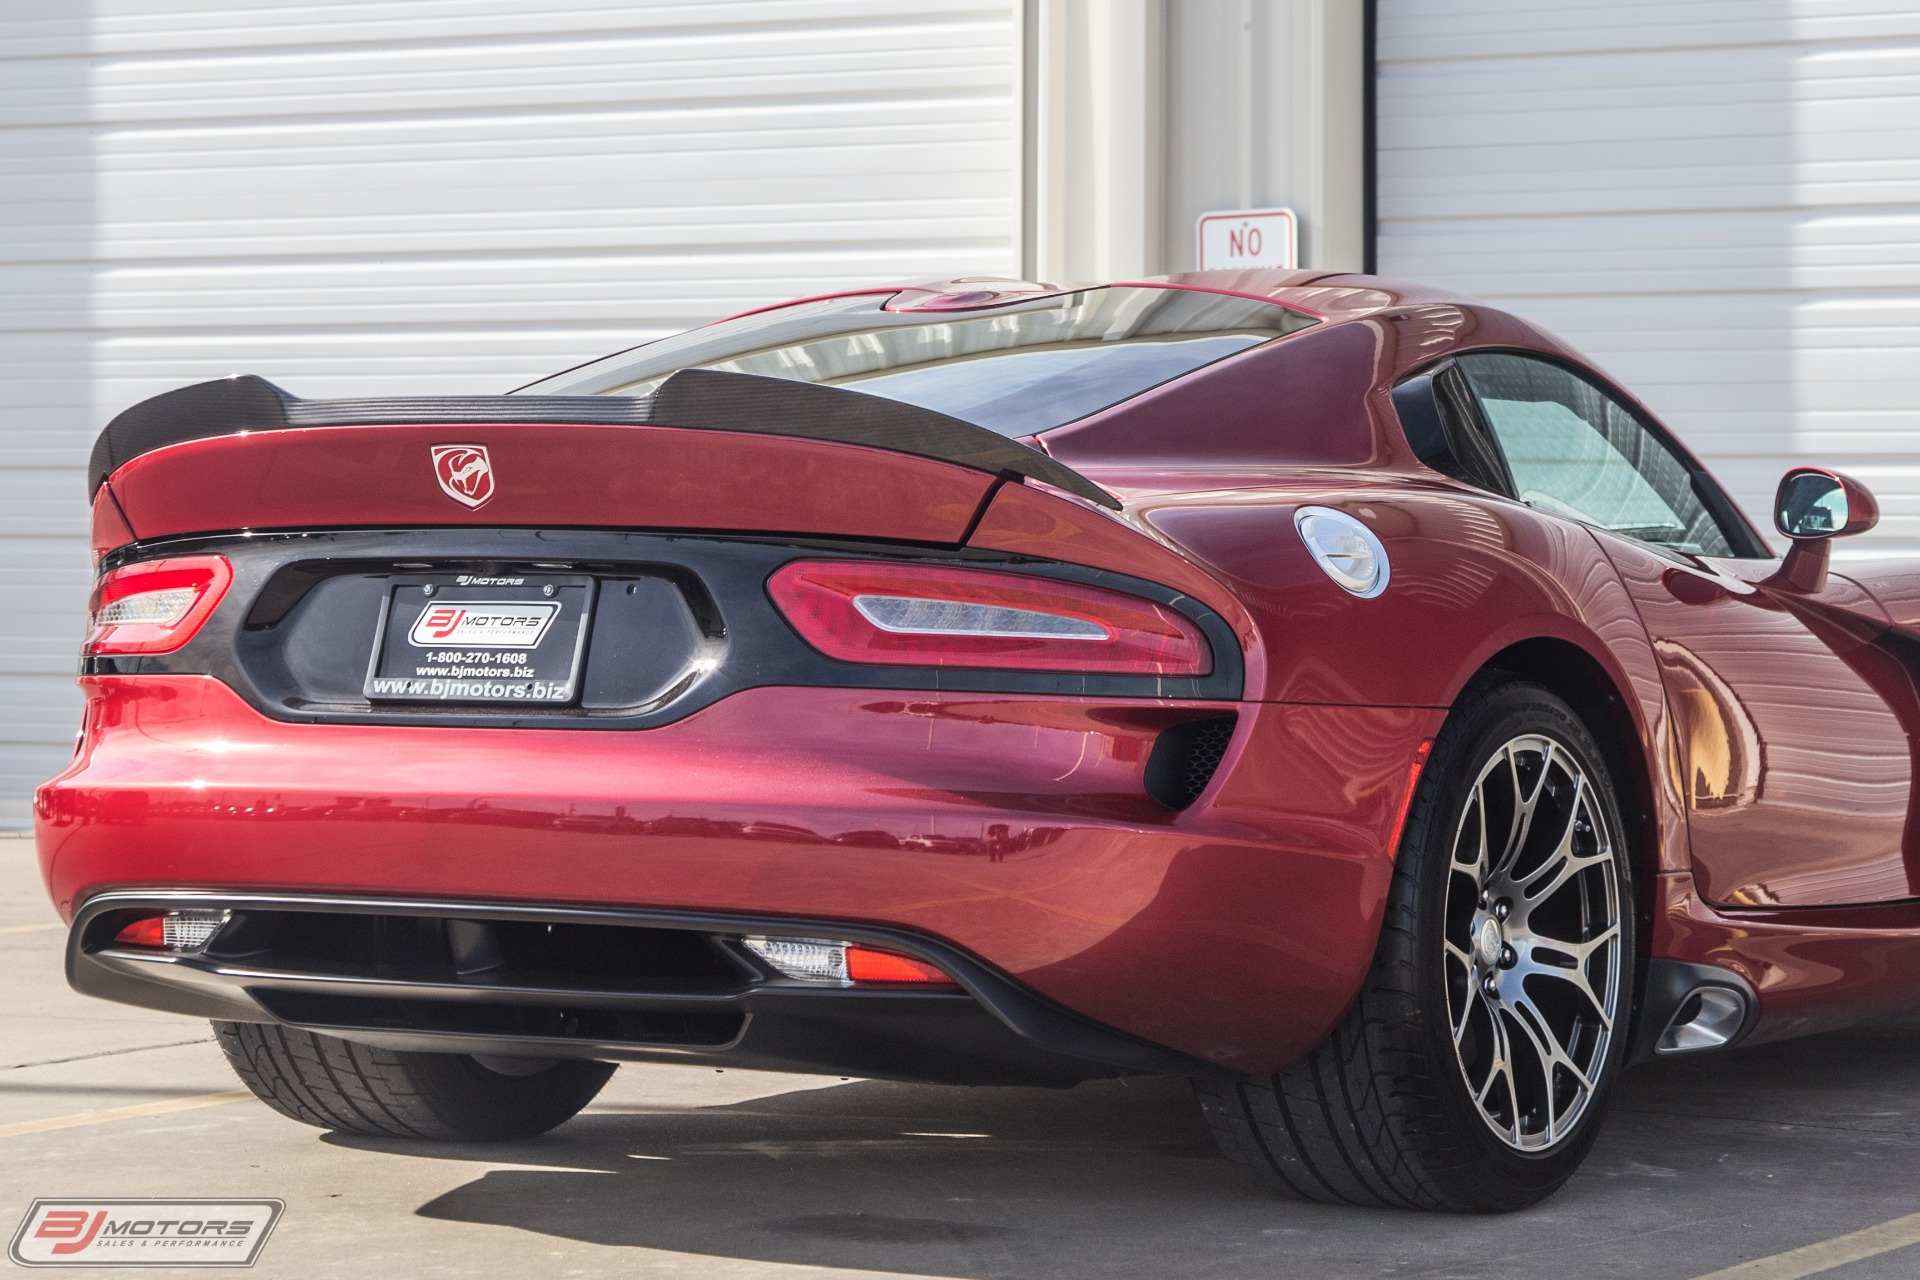 Used-2016-Dodge-Viper-GTC-Arrow-90L